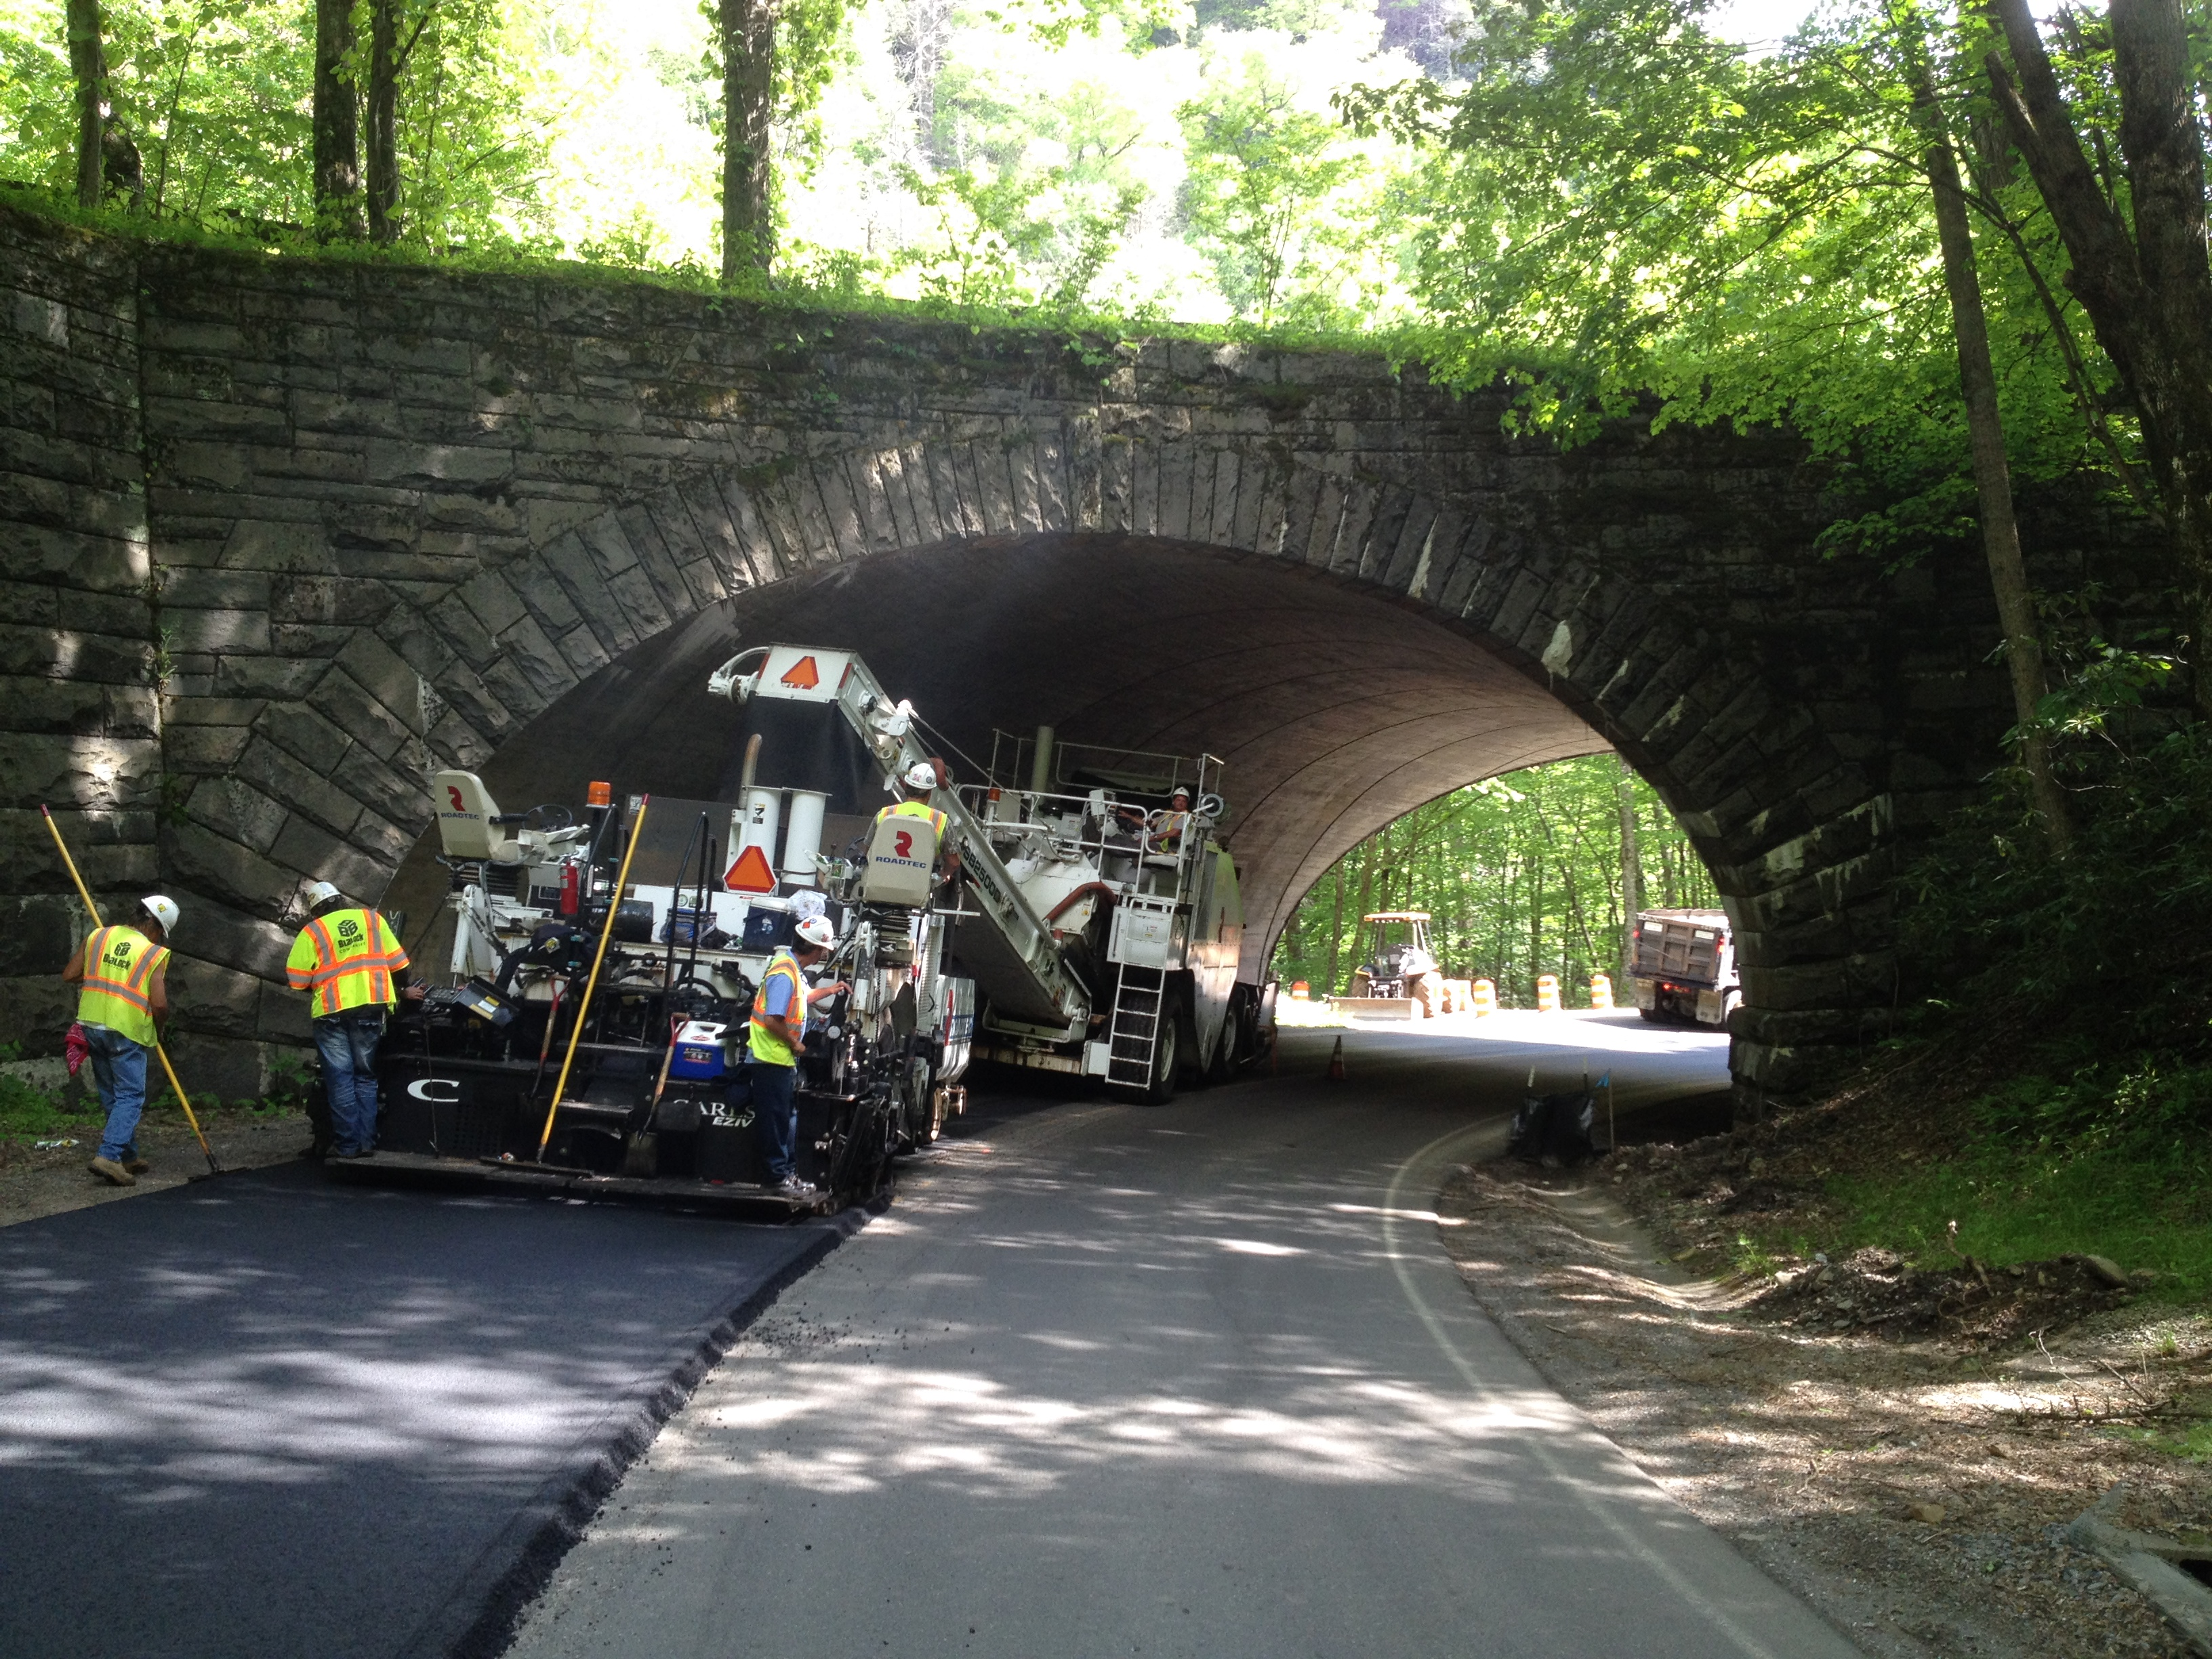 Road crew paves a road just before a stone bridge overpass.